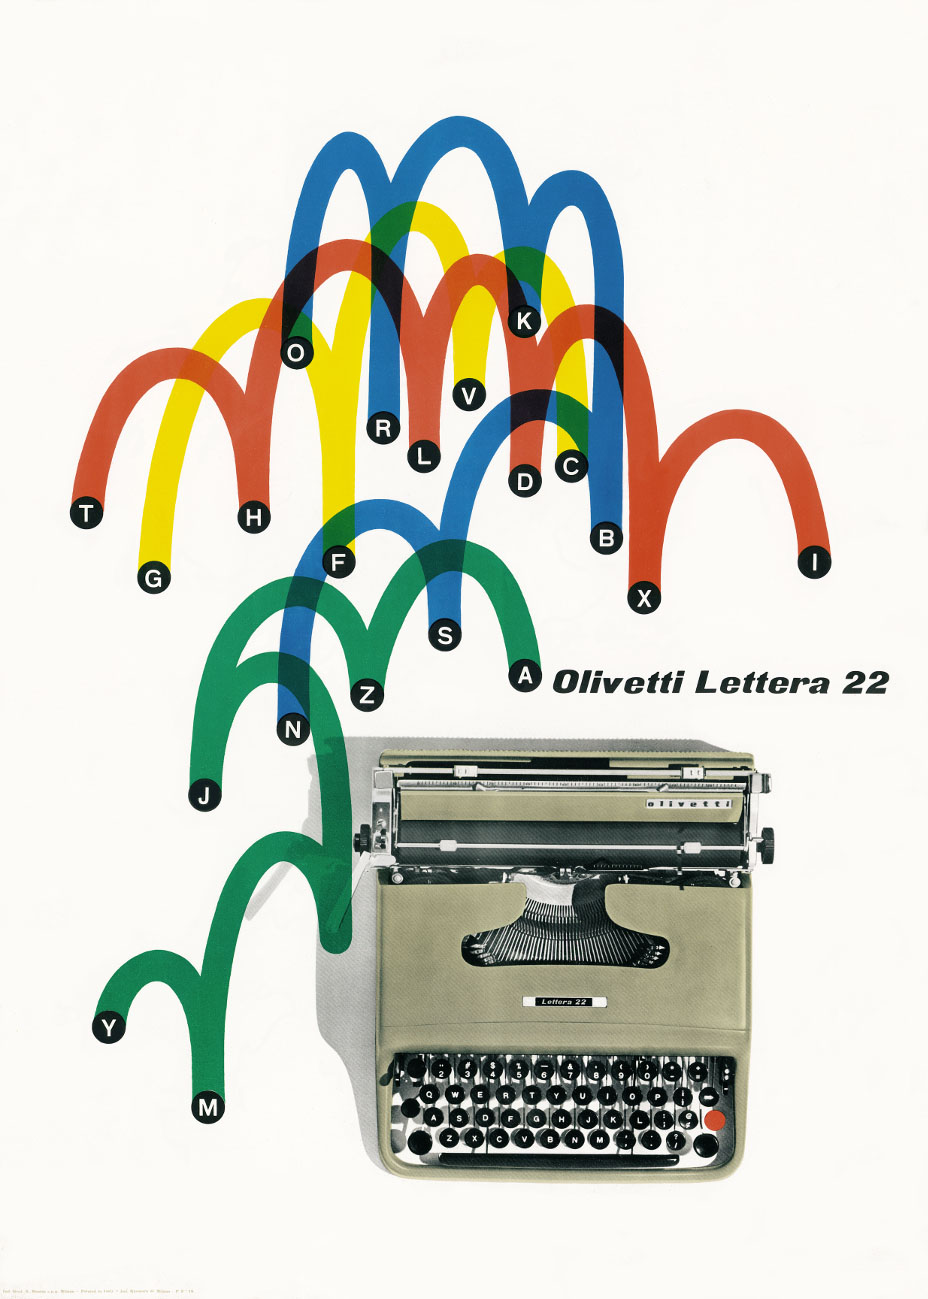 New ICA show celebrates the gorgeous design and architecture of Olivetti